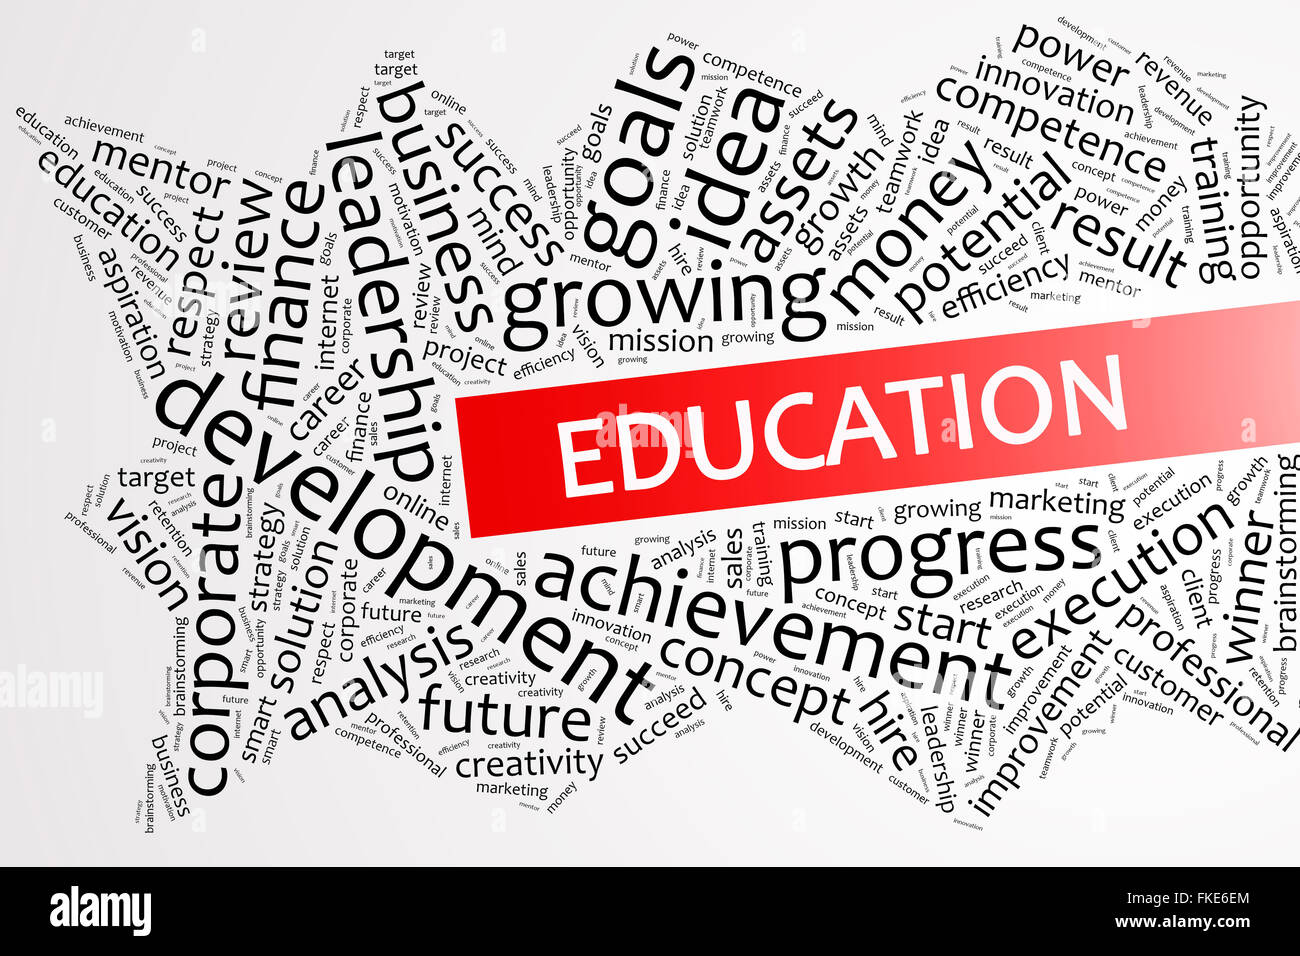 Education word on word cloud business concept - Stock Image